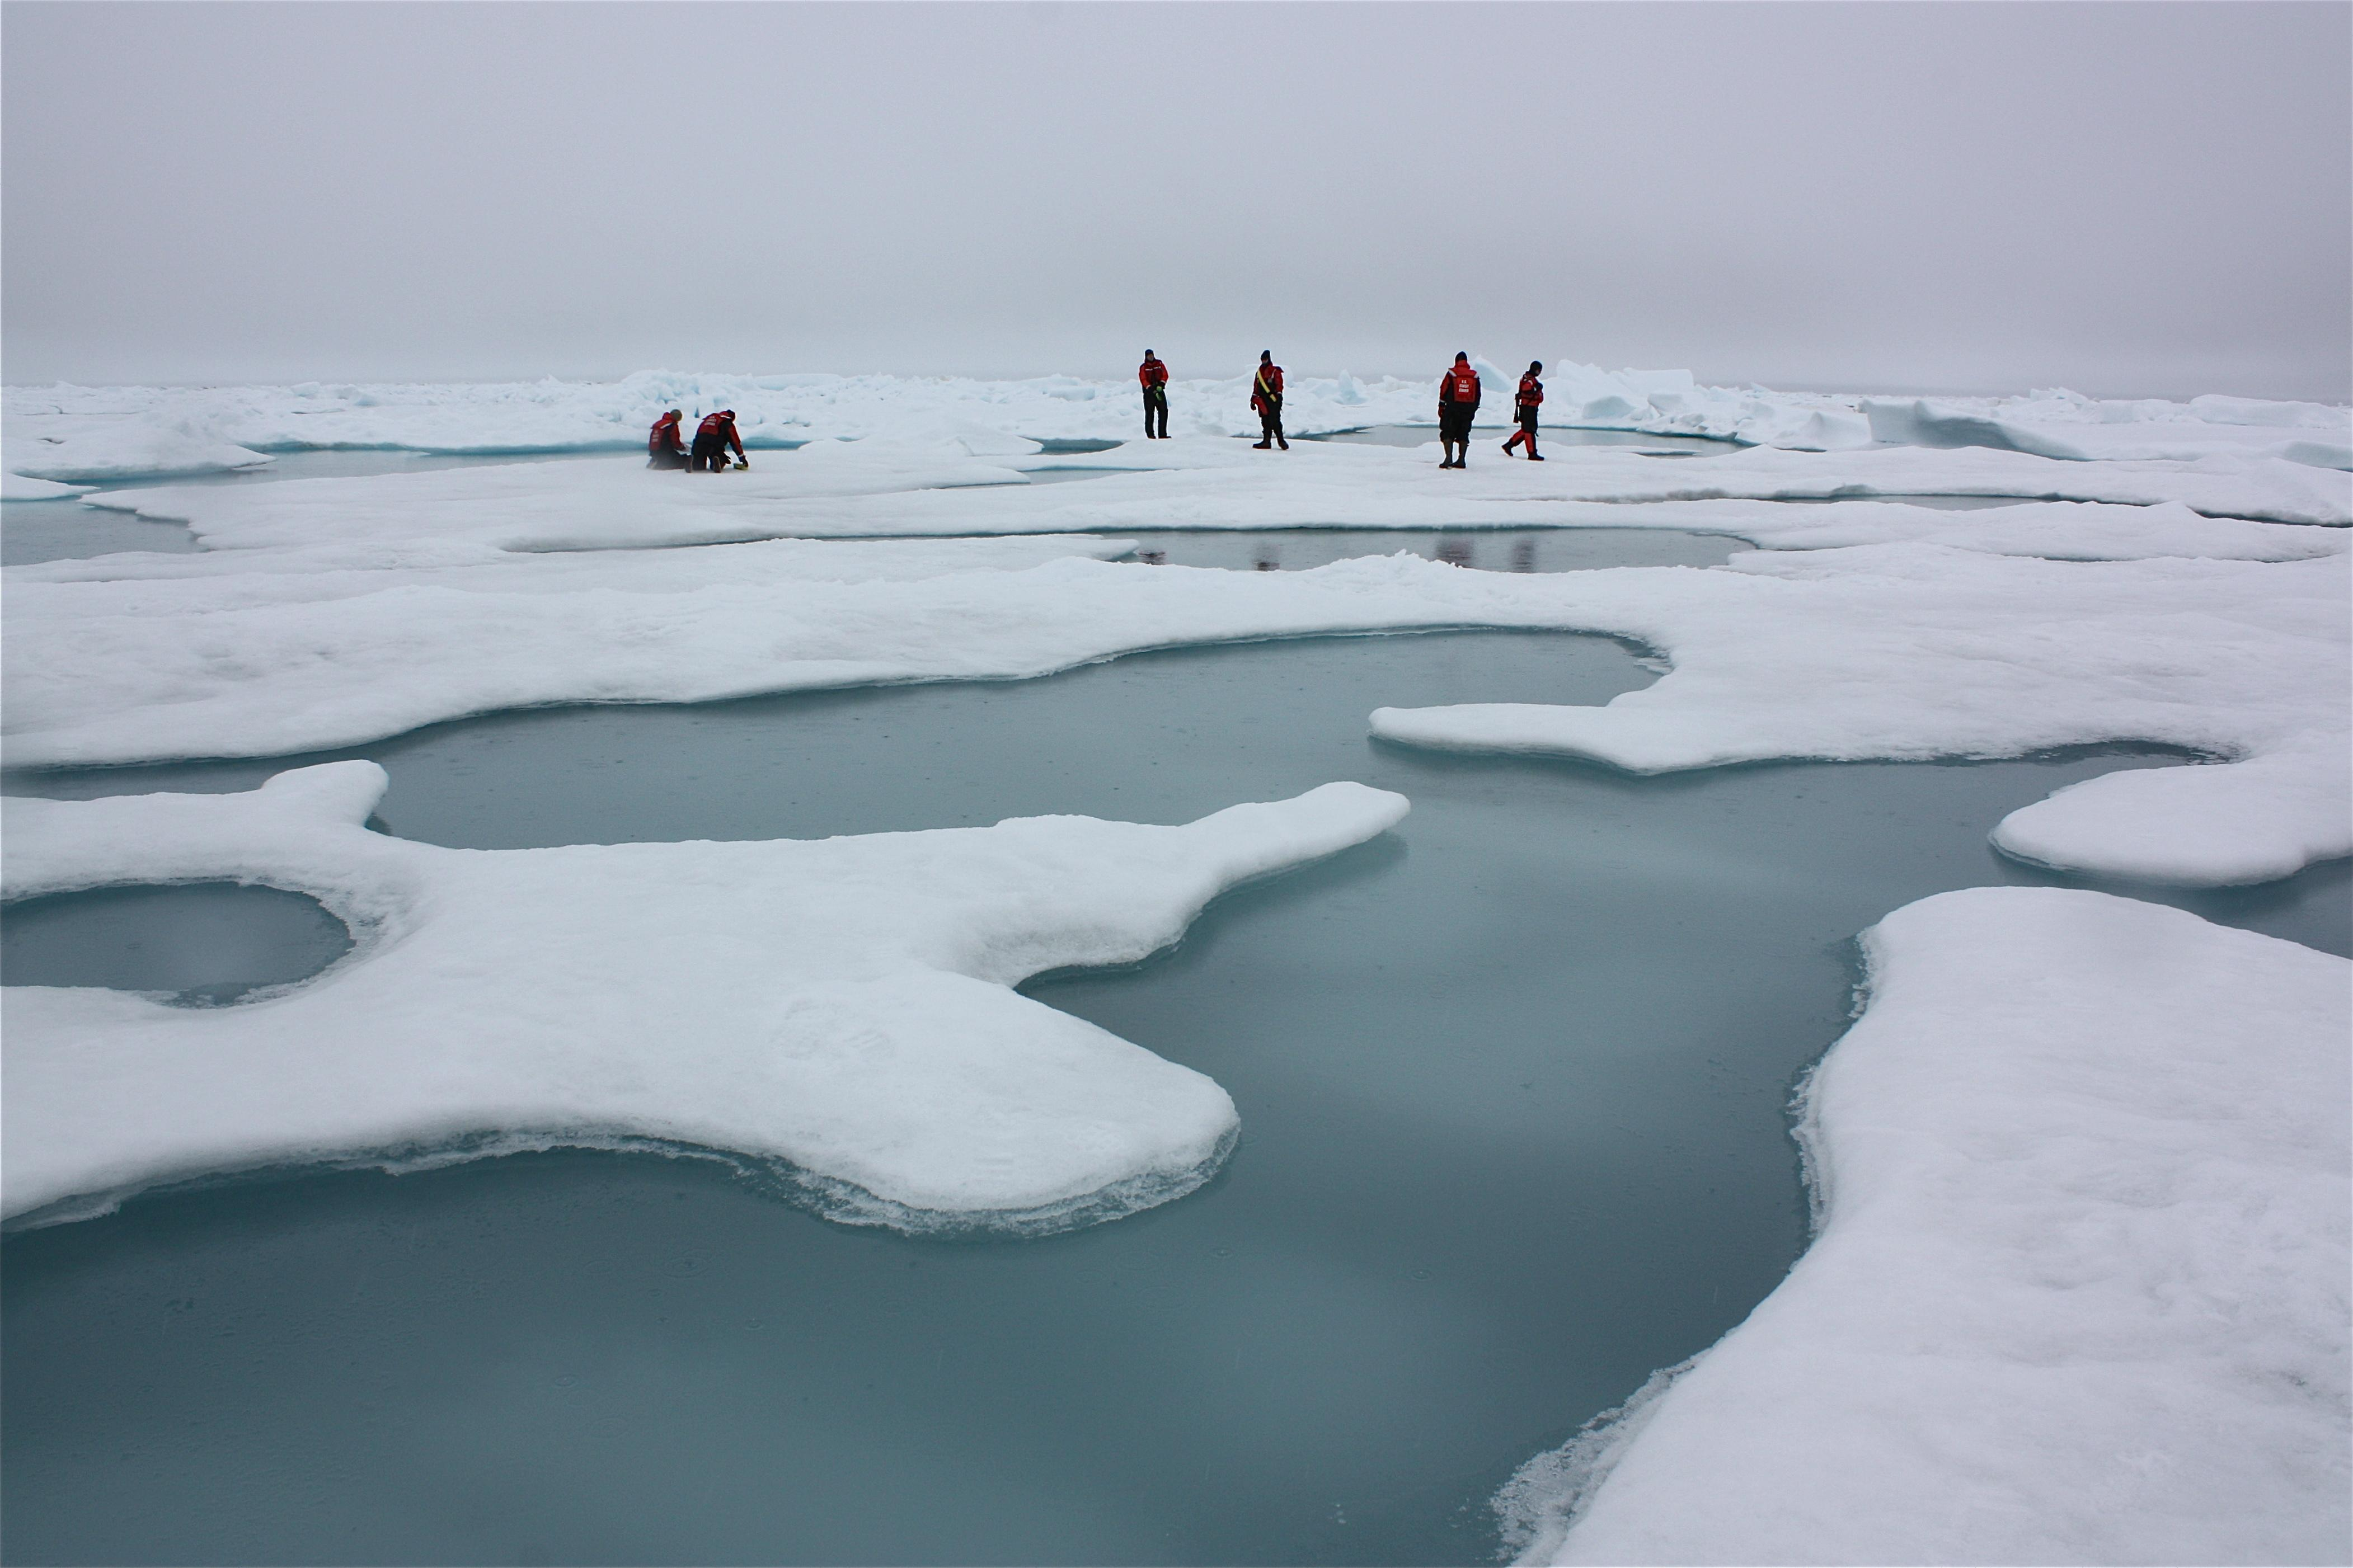 Scientists with NASA's ICESCAPE mission conduct research on Arctic sea ice and melt ponds in the Chukchi Sea, on July 4, 2010. (Kathryn Hansen / NASA)